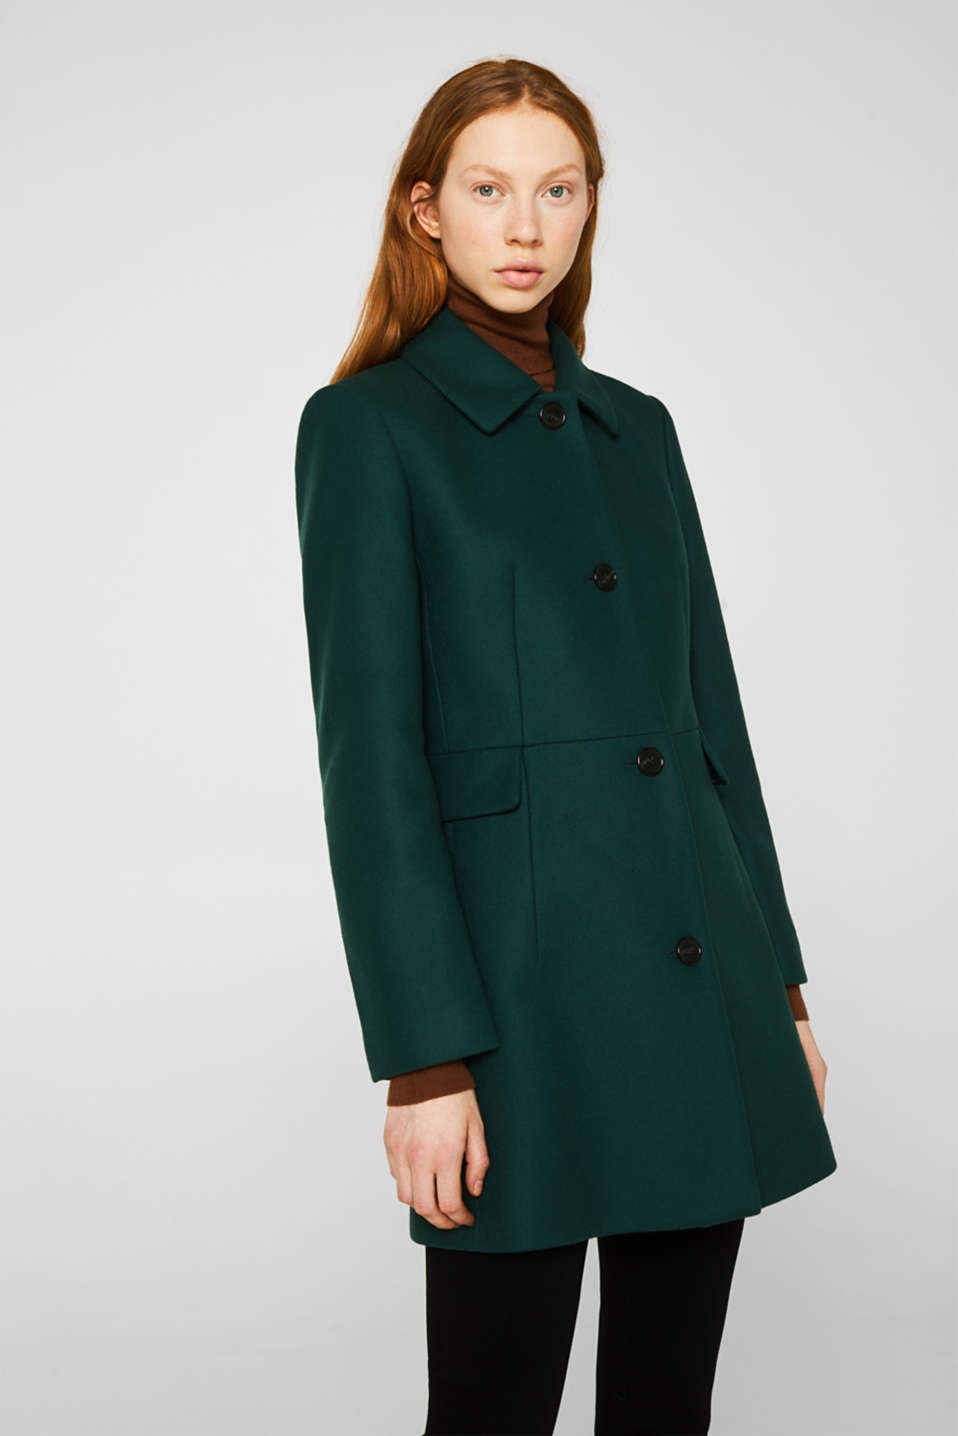 Made of blended wool: coat made of Italian yarn